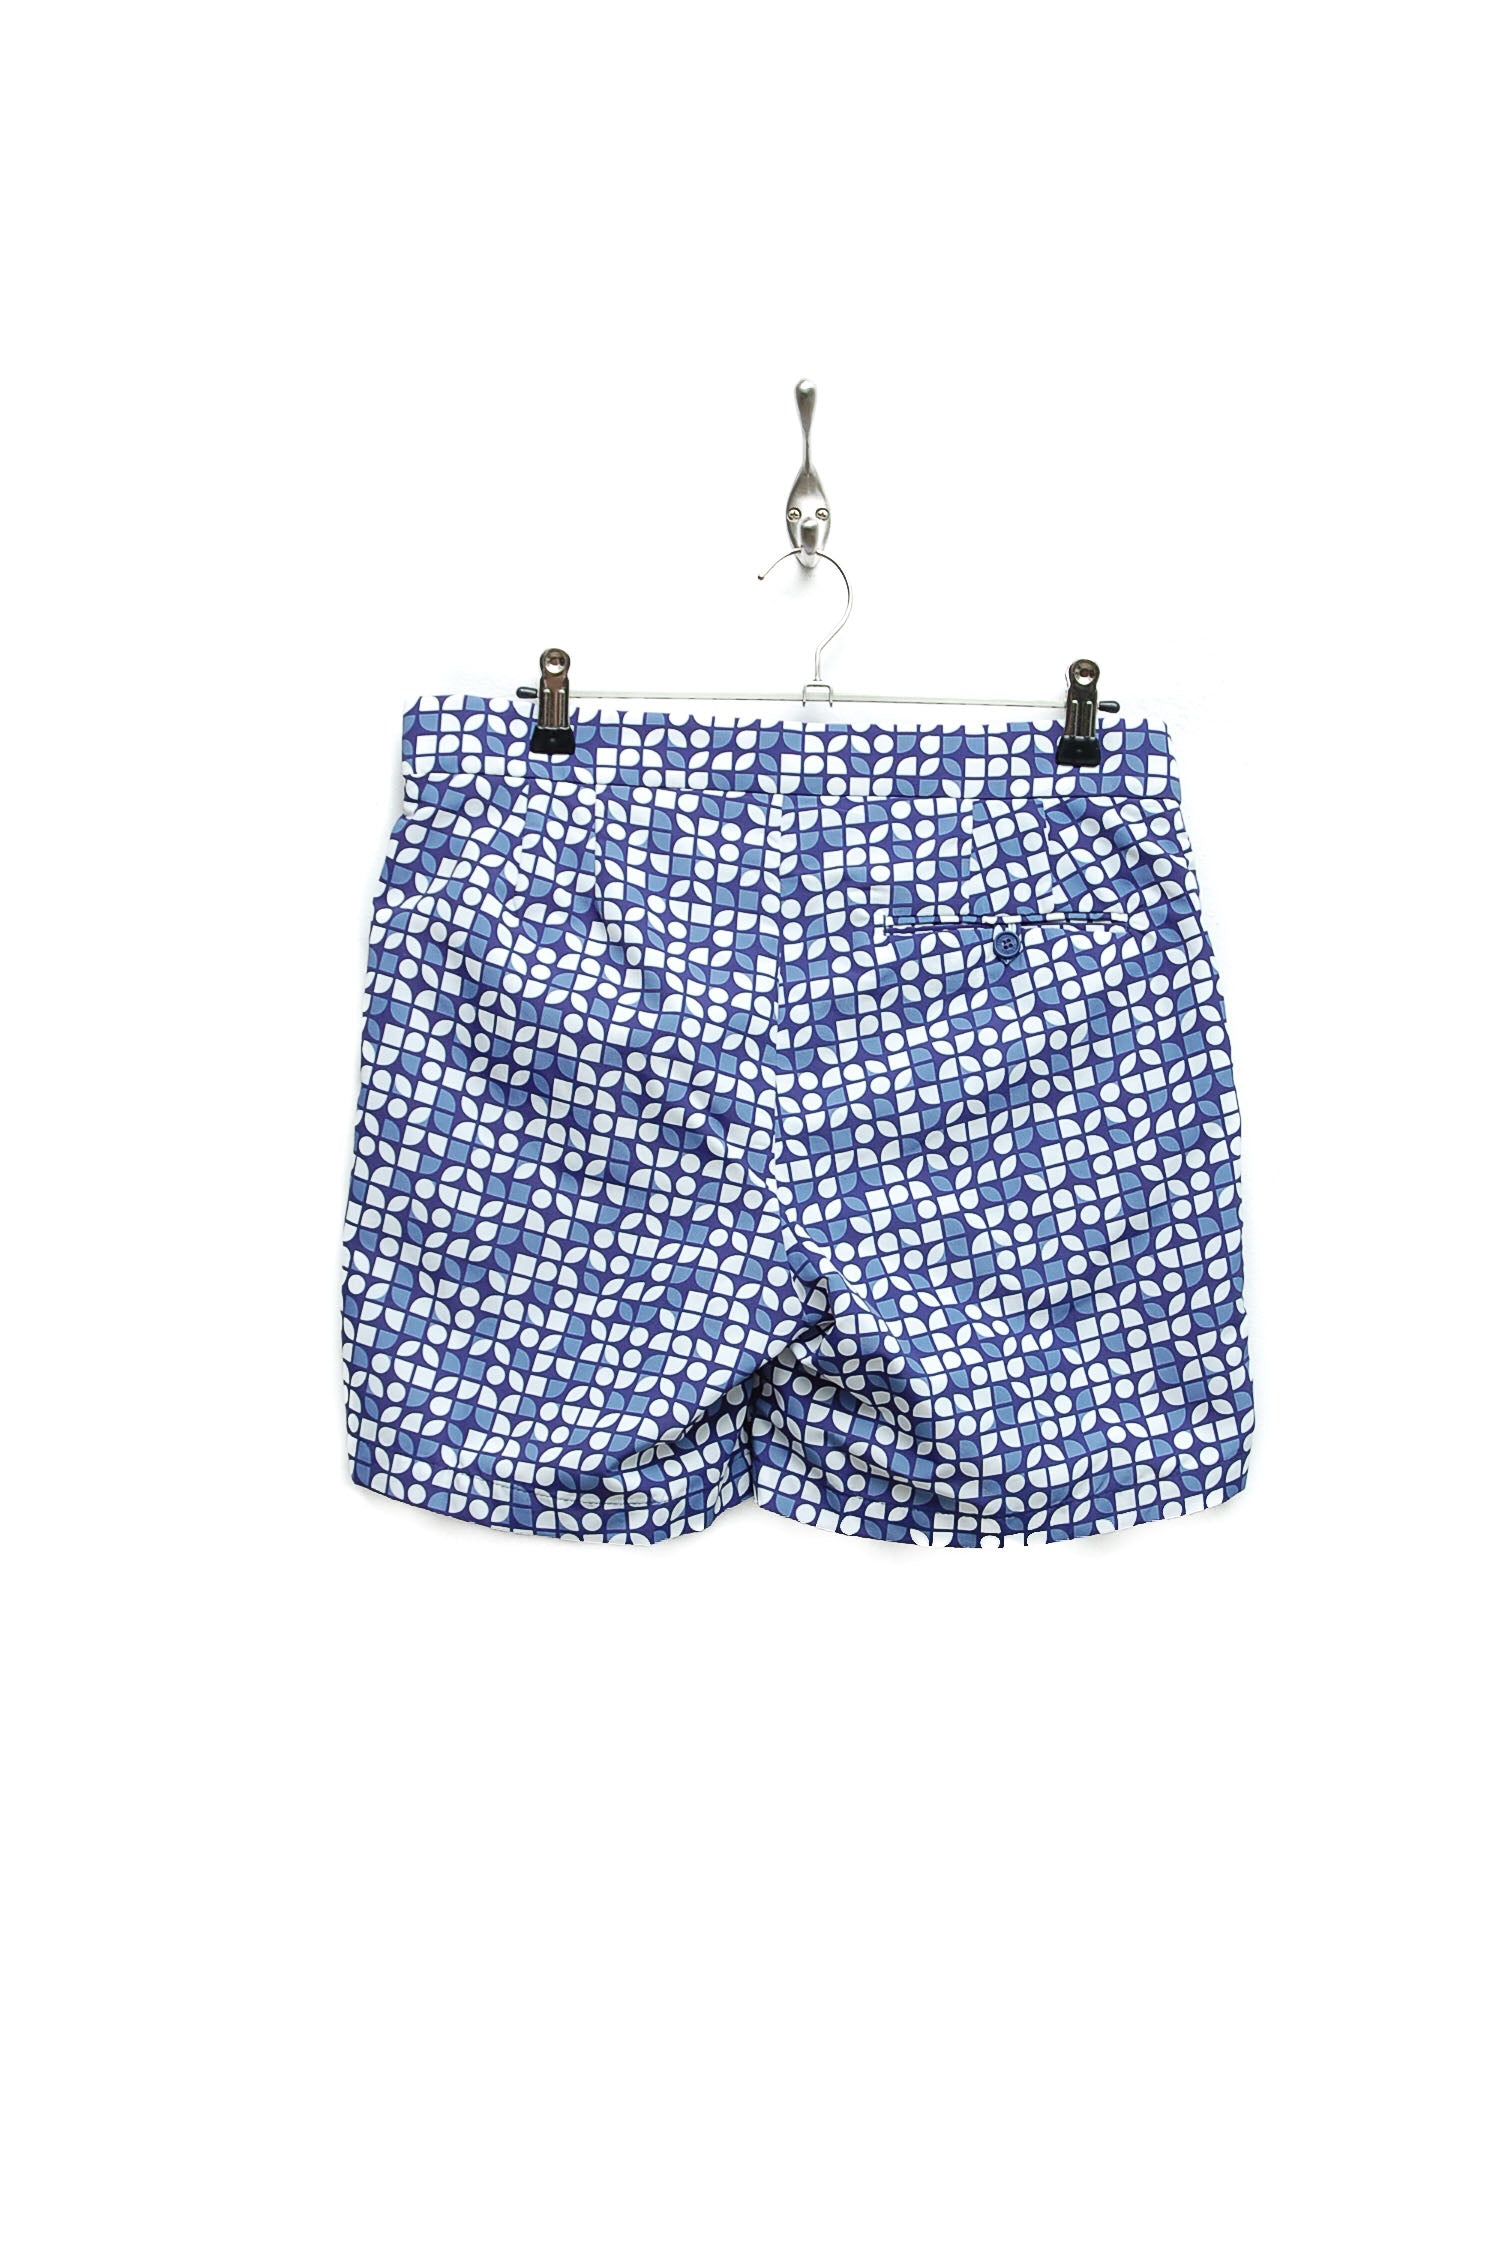 Frescobol Carioca Trunks Tailored Short Cerejeira navy/slate blue